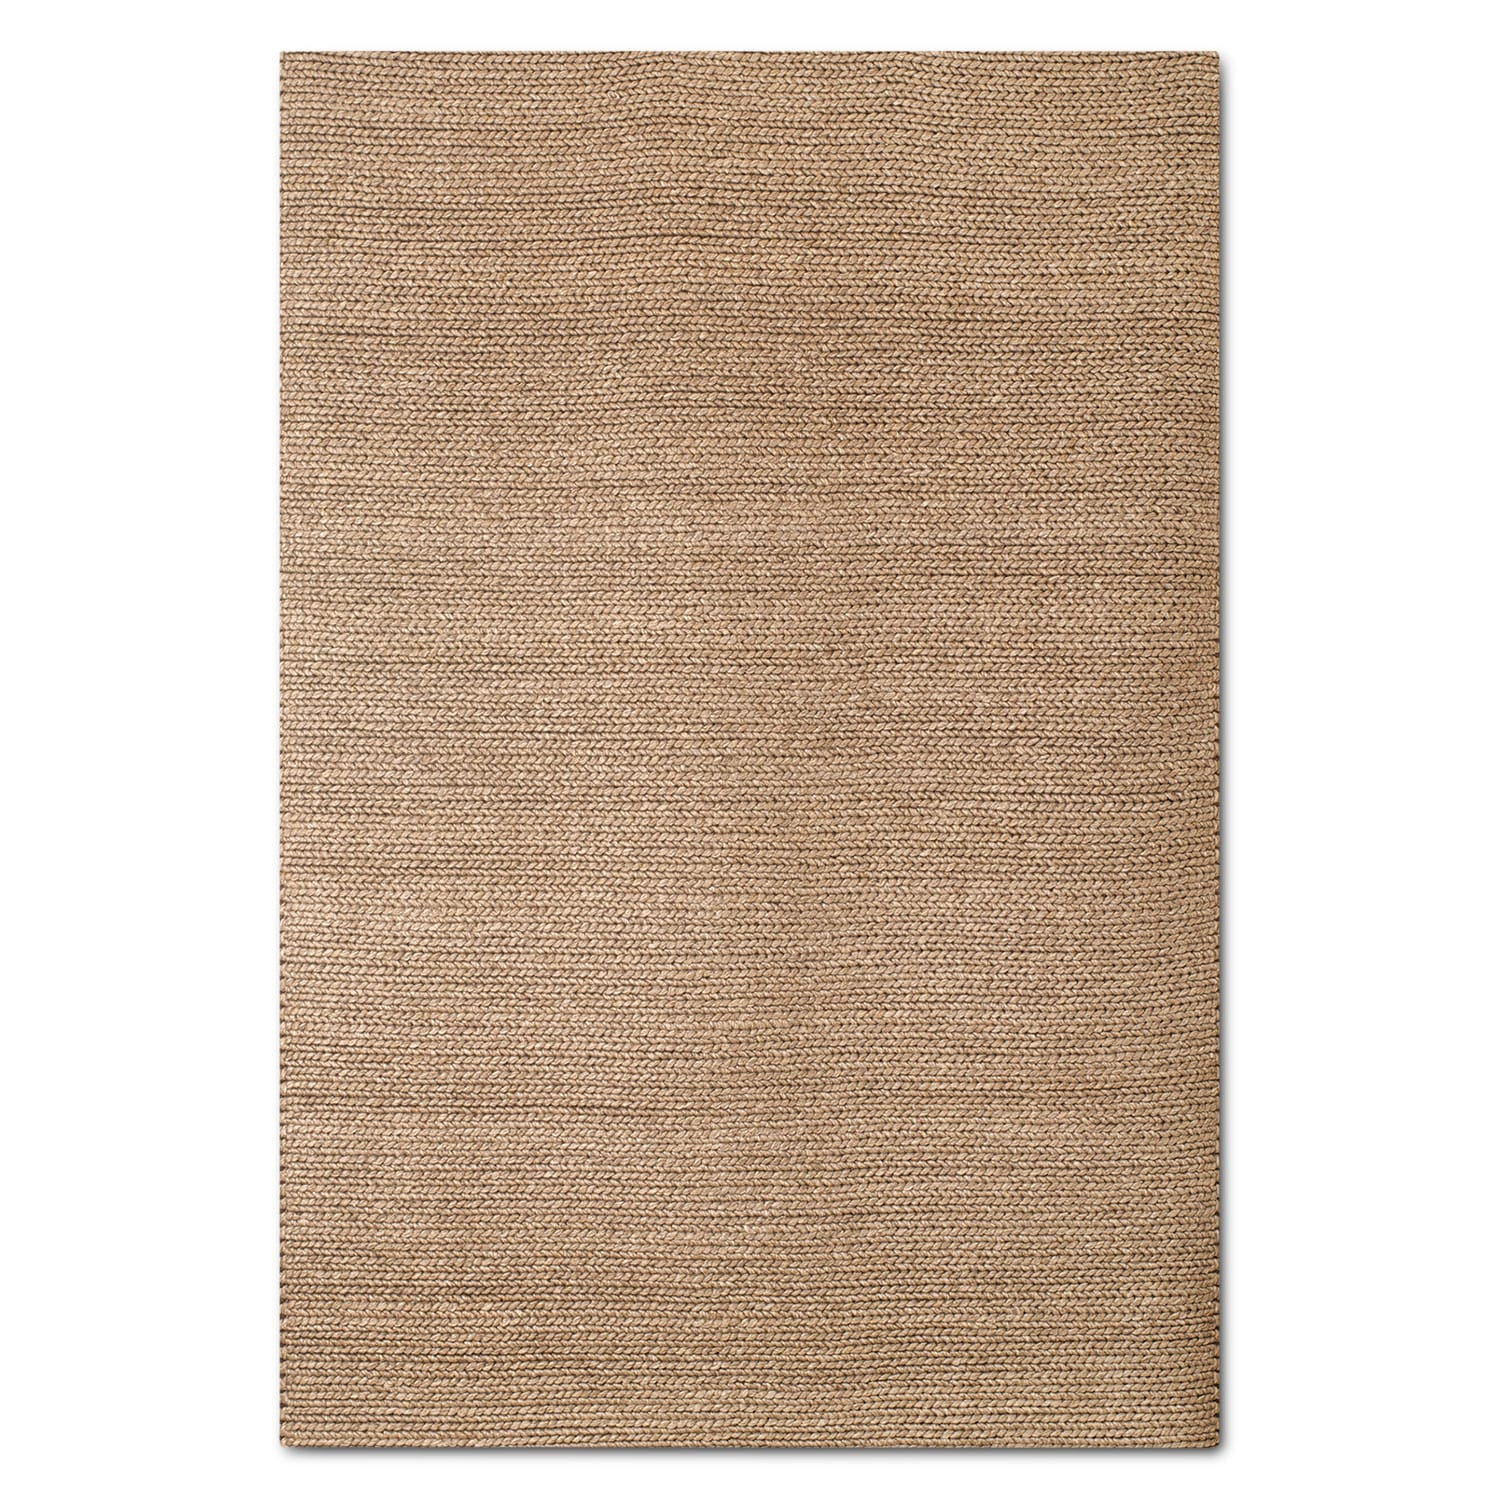 Rugs - Pixley Area Rug - Taupe